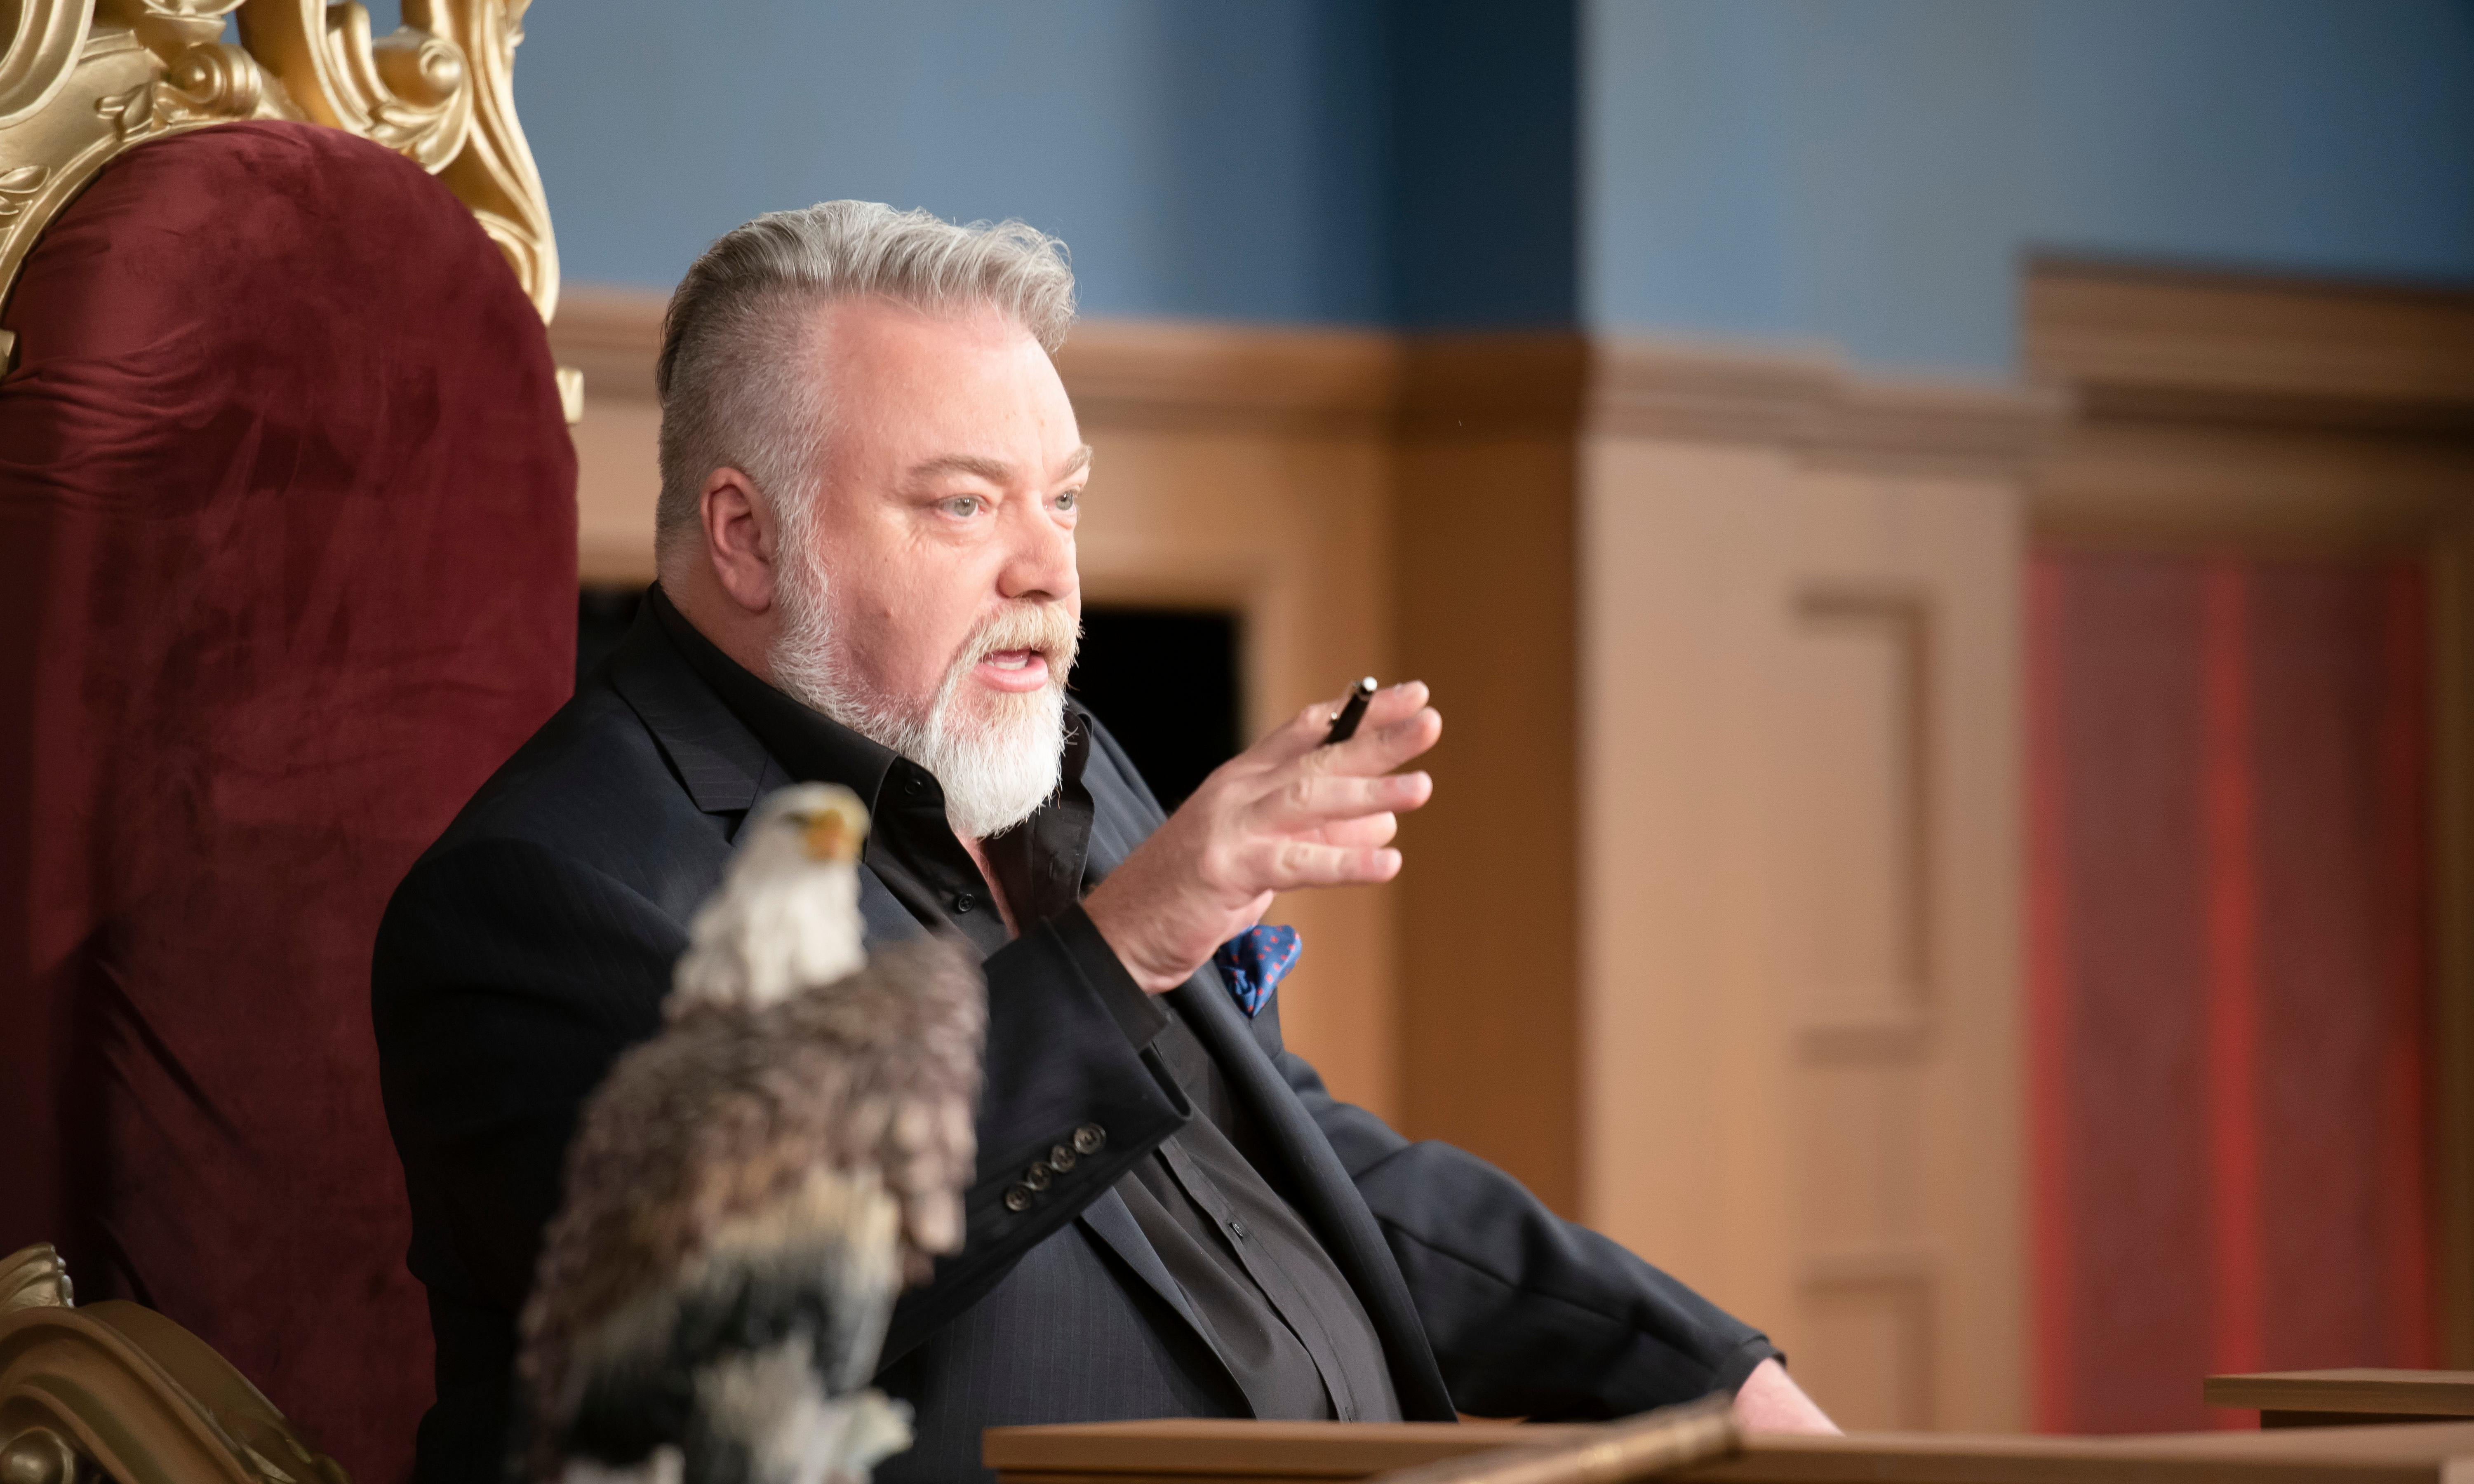 'King' Kyle Sandilands is judged and found wanting